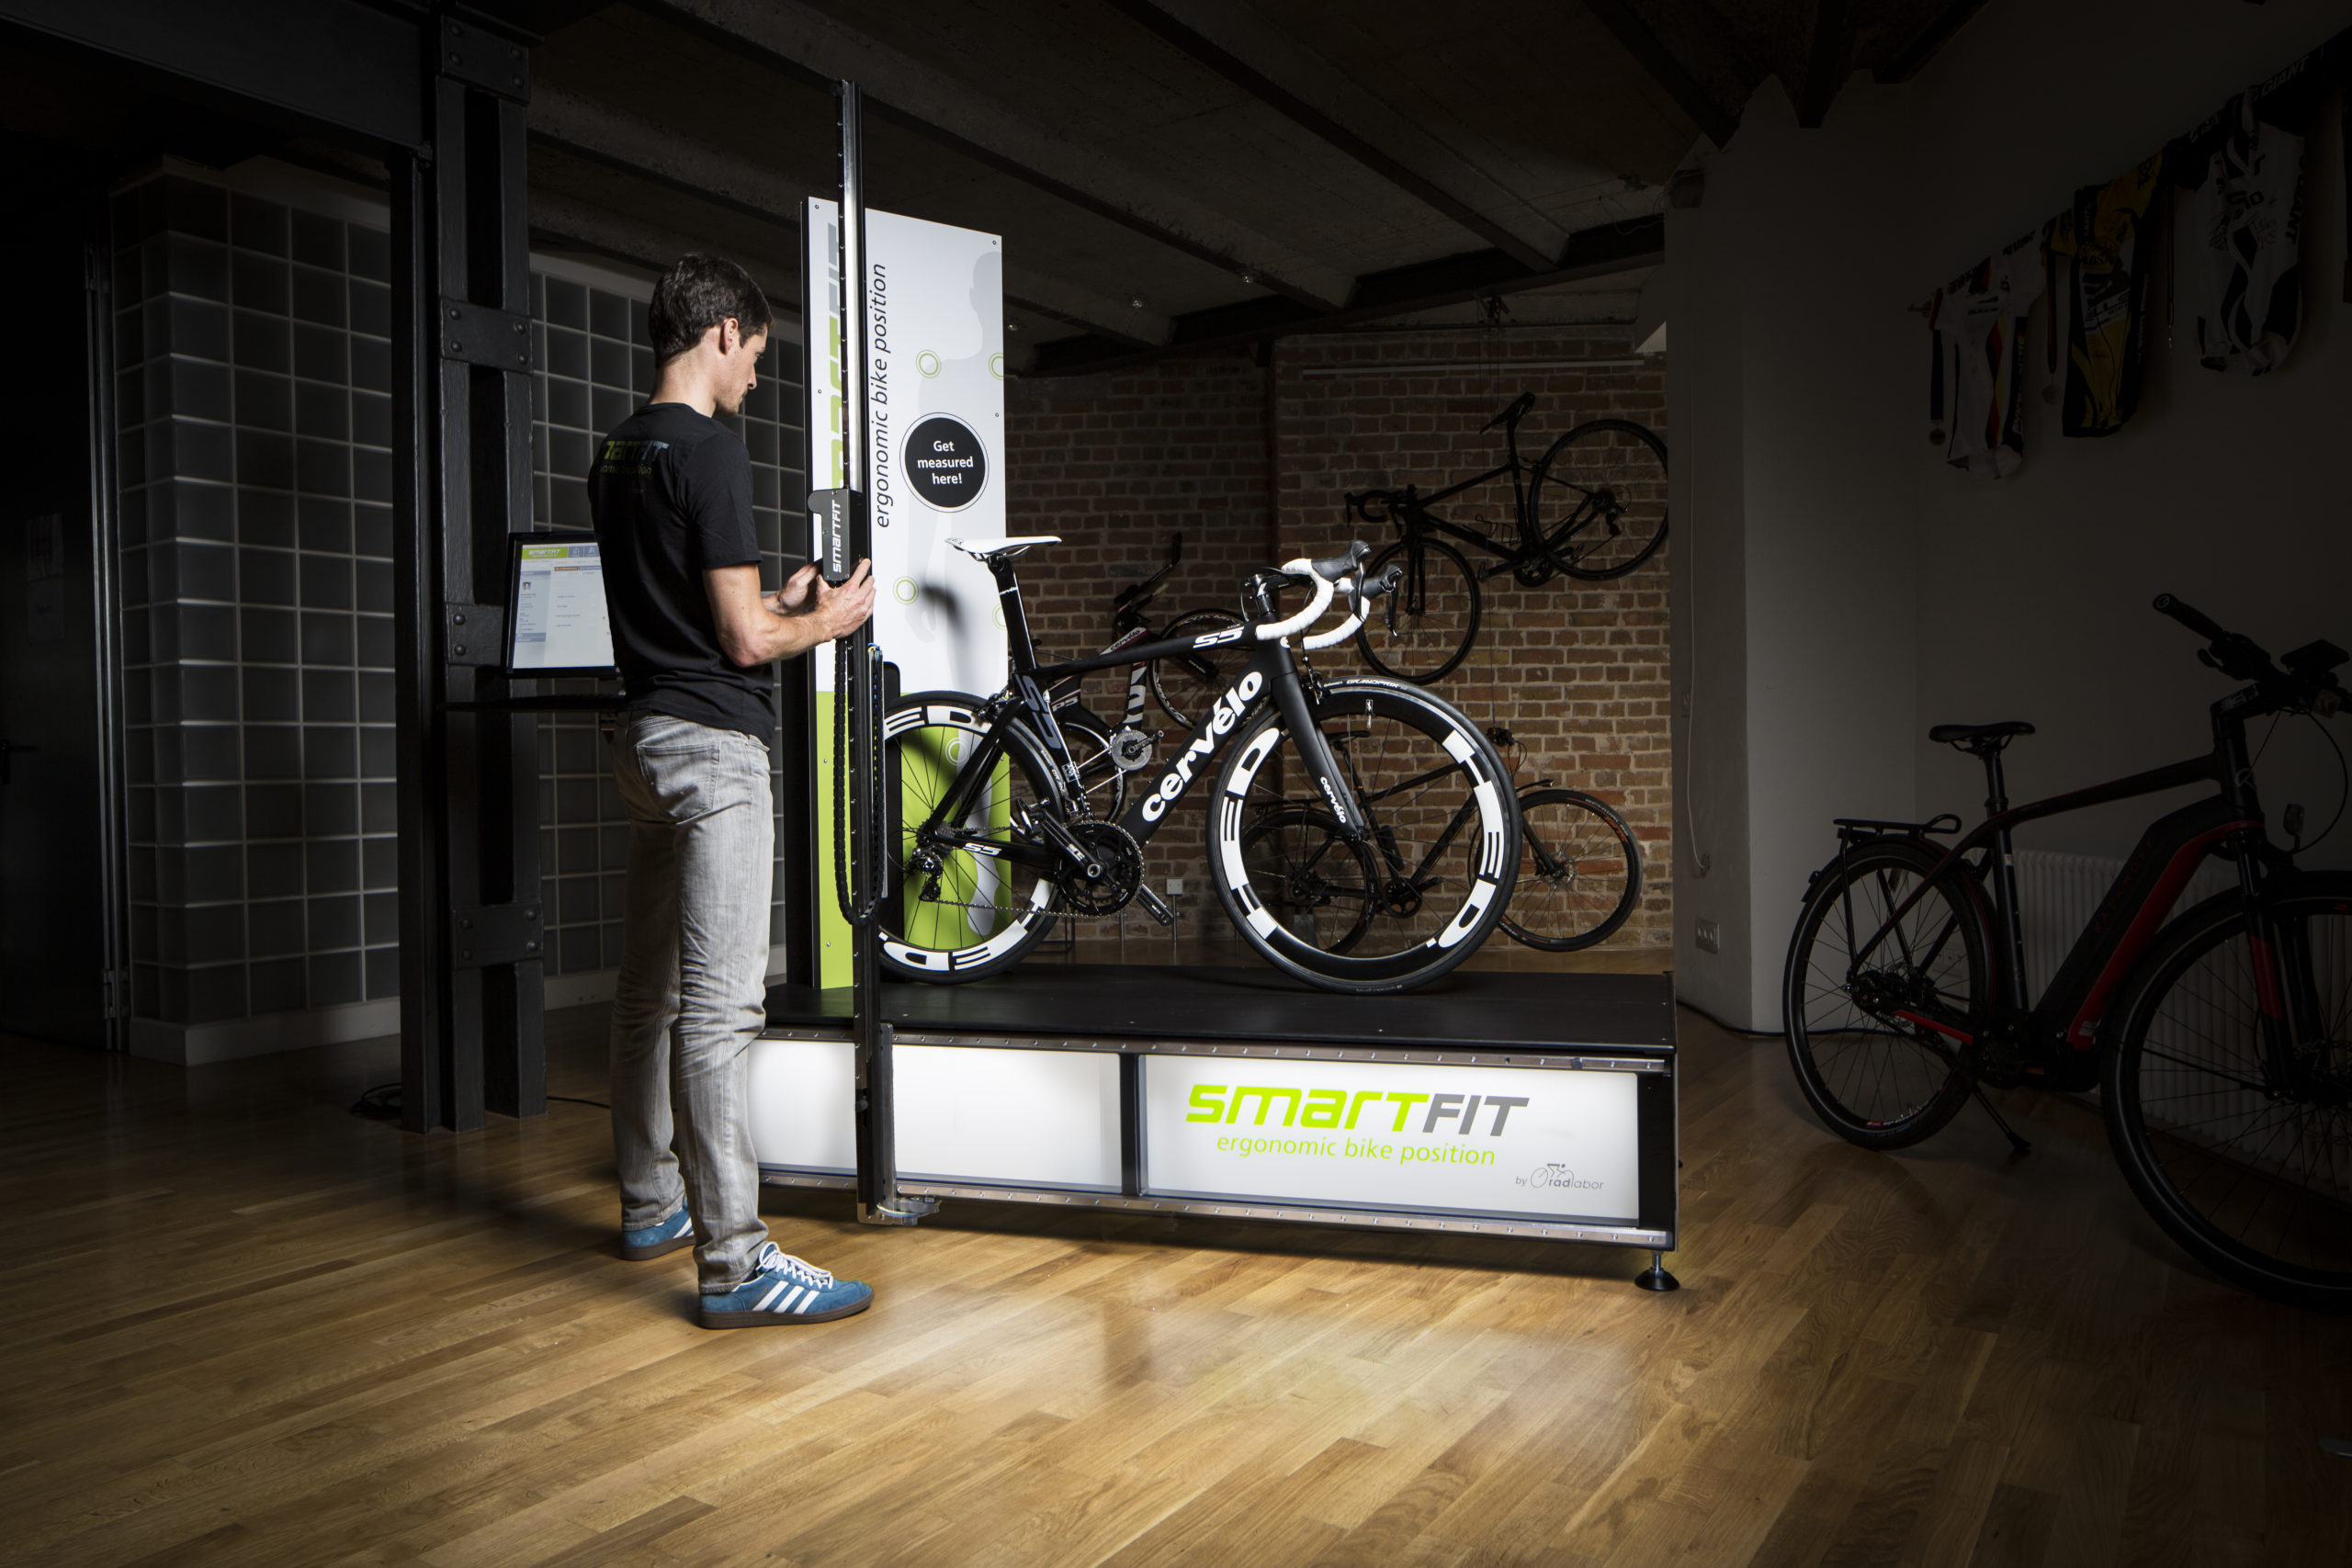 Smartfit Bikefitting By Radlabor Bike Villa Limburg